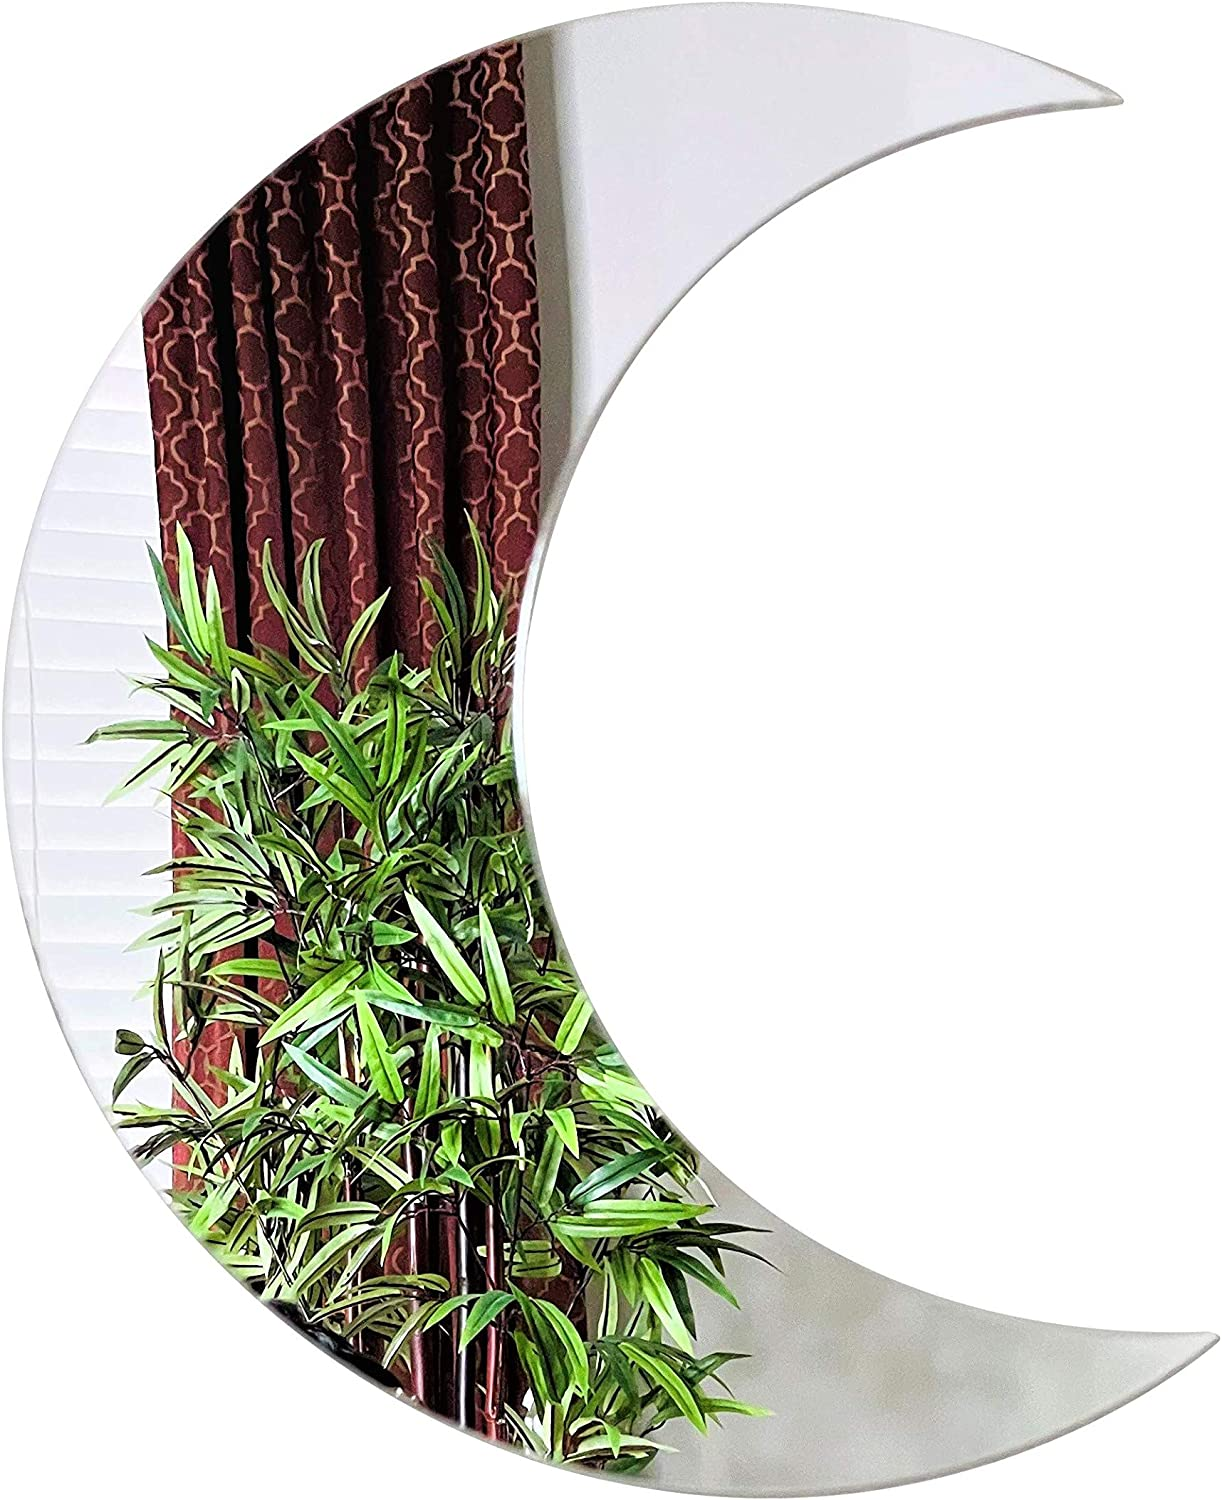 Huge Crescent Shaped Fancy Acrylic Decor Indefinitely Ranking TOP12 Wall Moon Silver Mirror